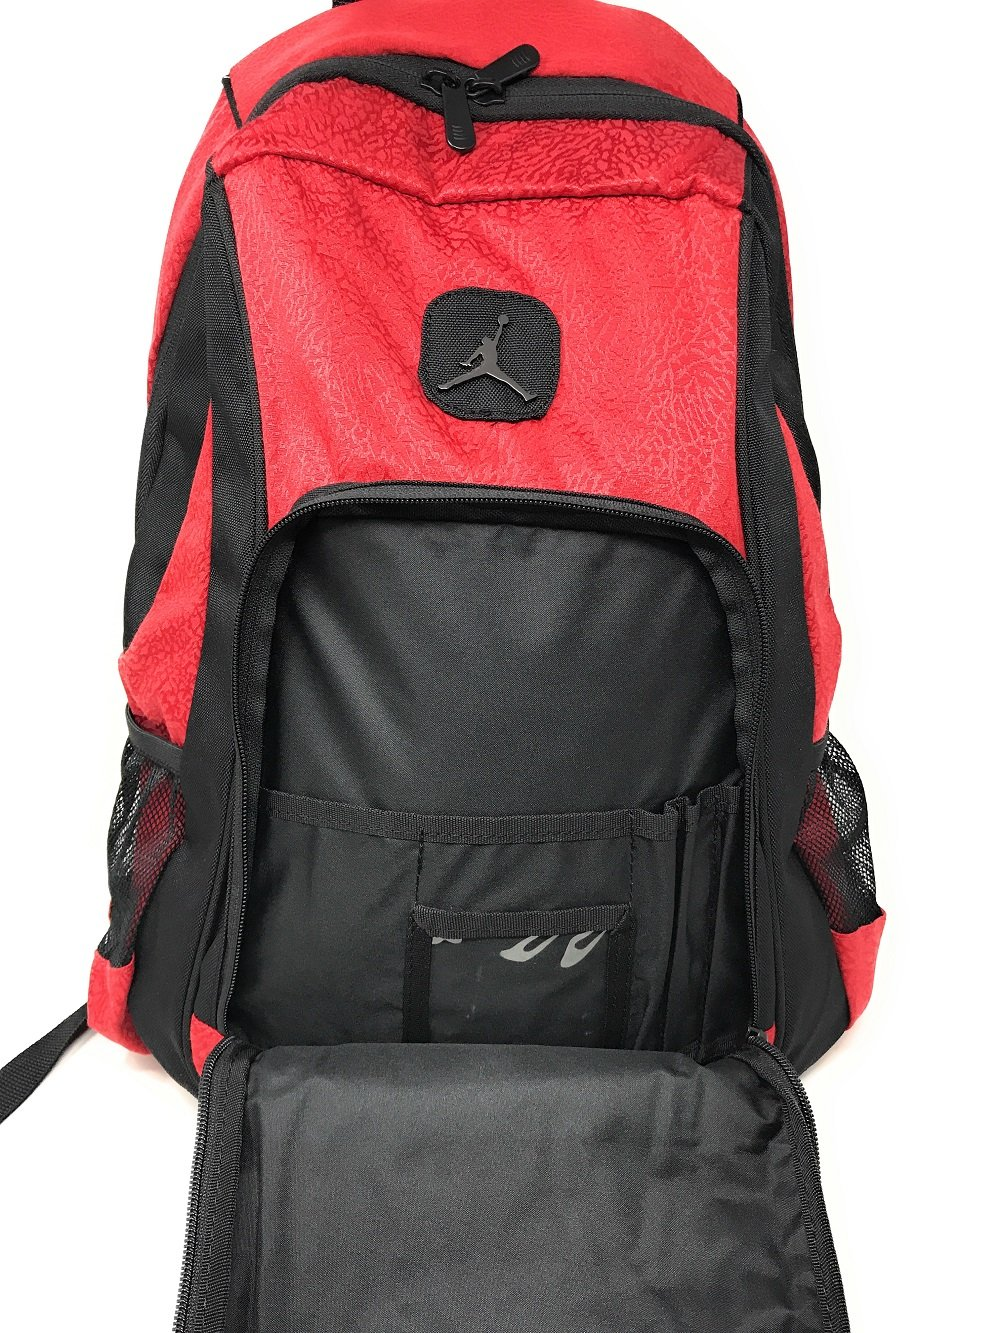 f8f6e59a9d Nike Air Jordan Legacy Elite Noir Rouge Sac à Dos 50,8 cm Sac d'école:  Amazon.fr: Informatique